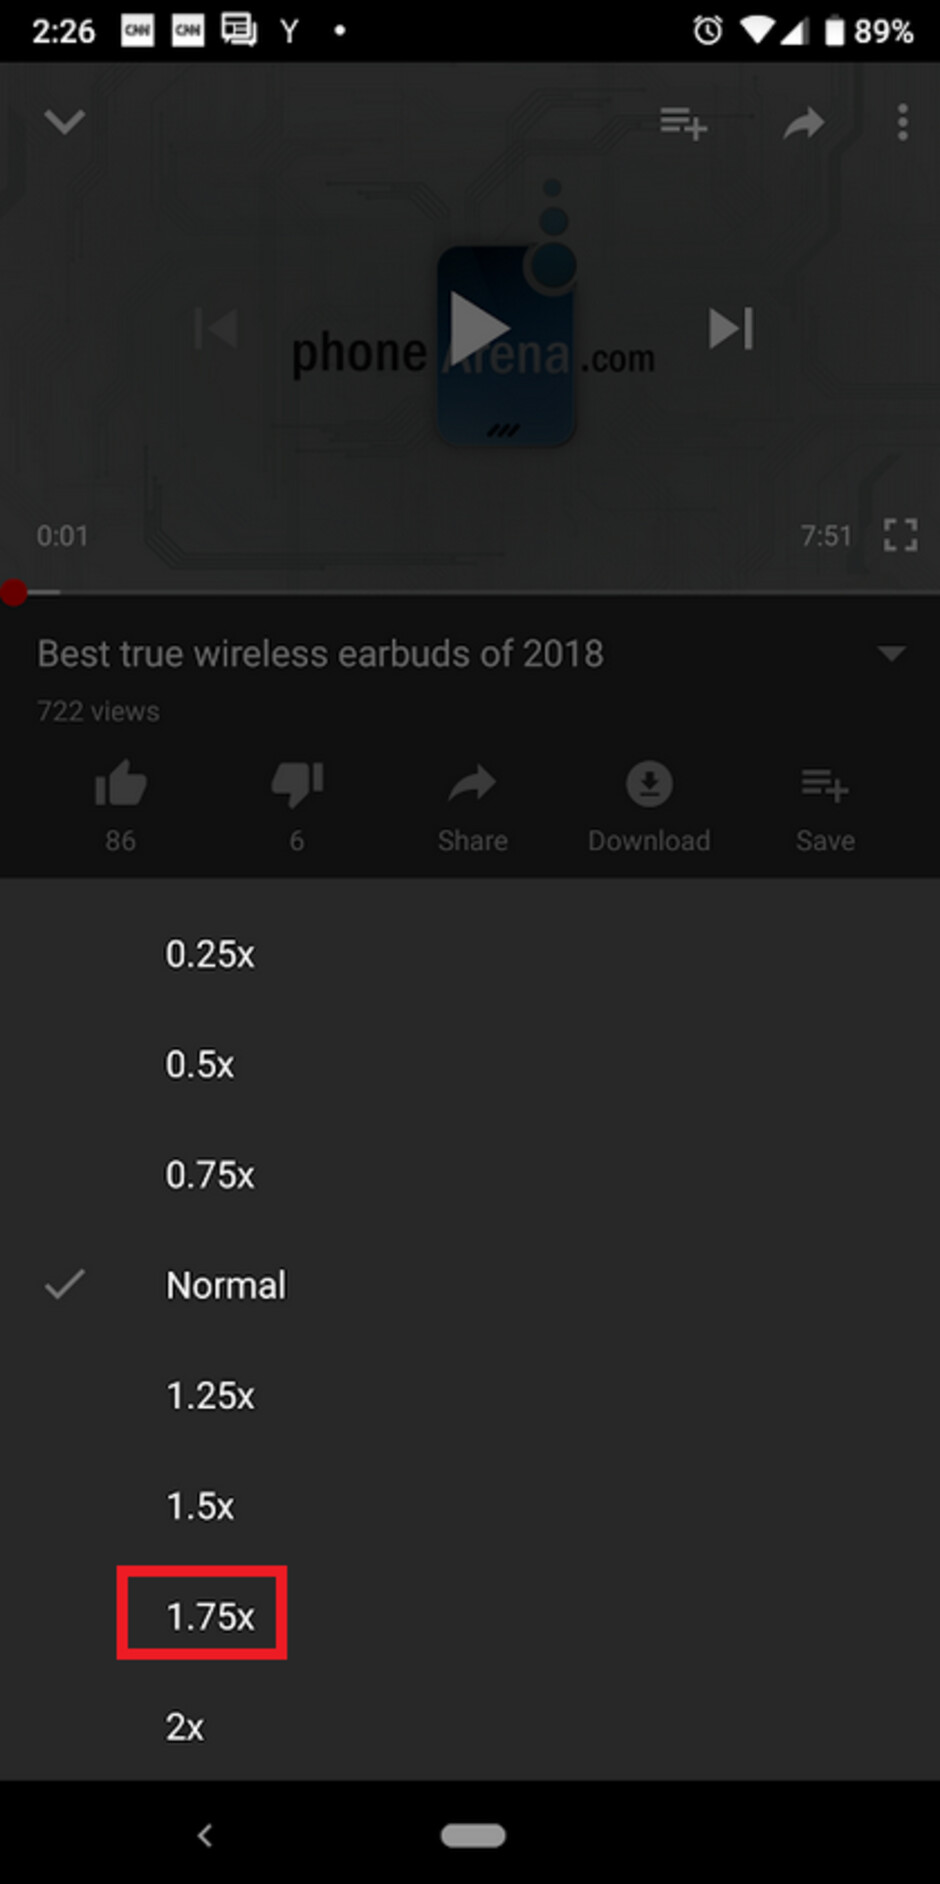 YouTube's Android app now offers playback speed at 1.75x normal - Google adds 1.75X playback speed option to the Android version of the YouTube app